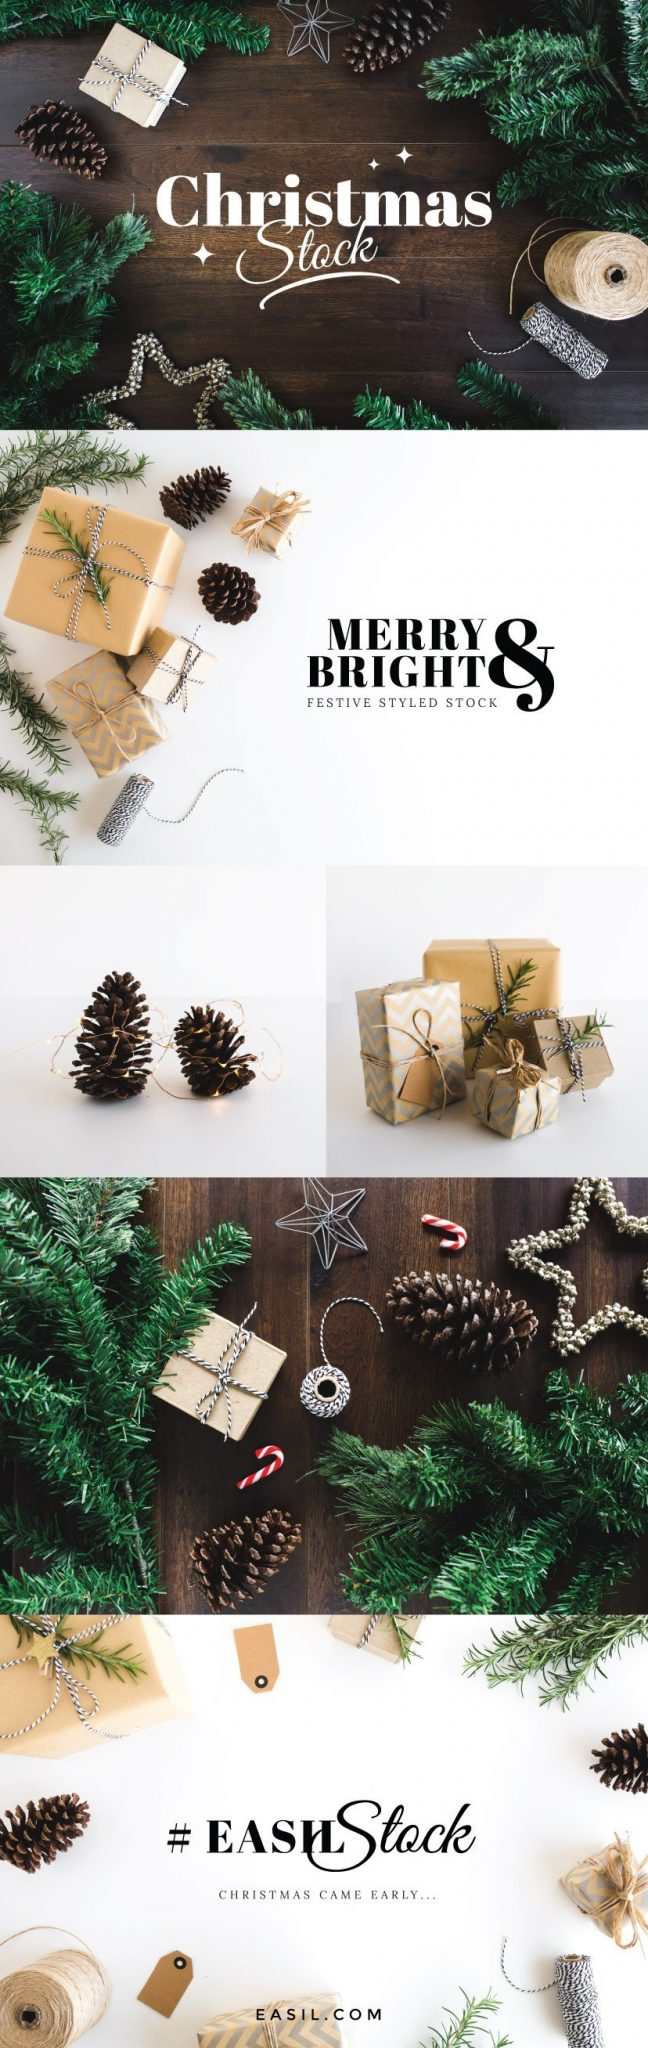 Festive styled stock for the holiday season and christmas